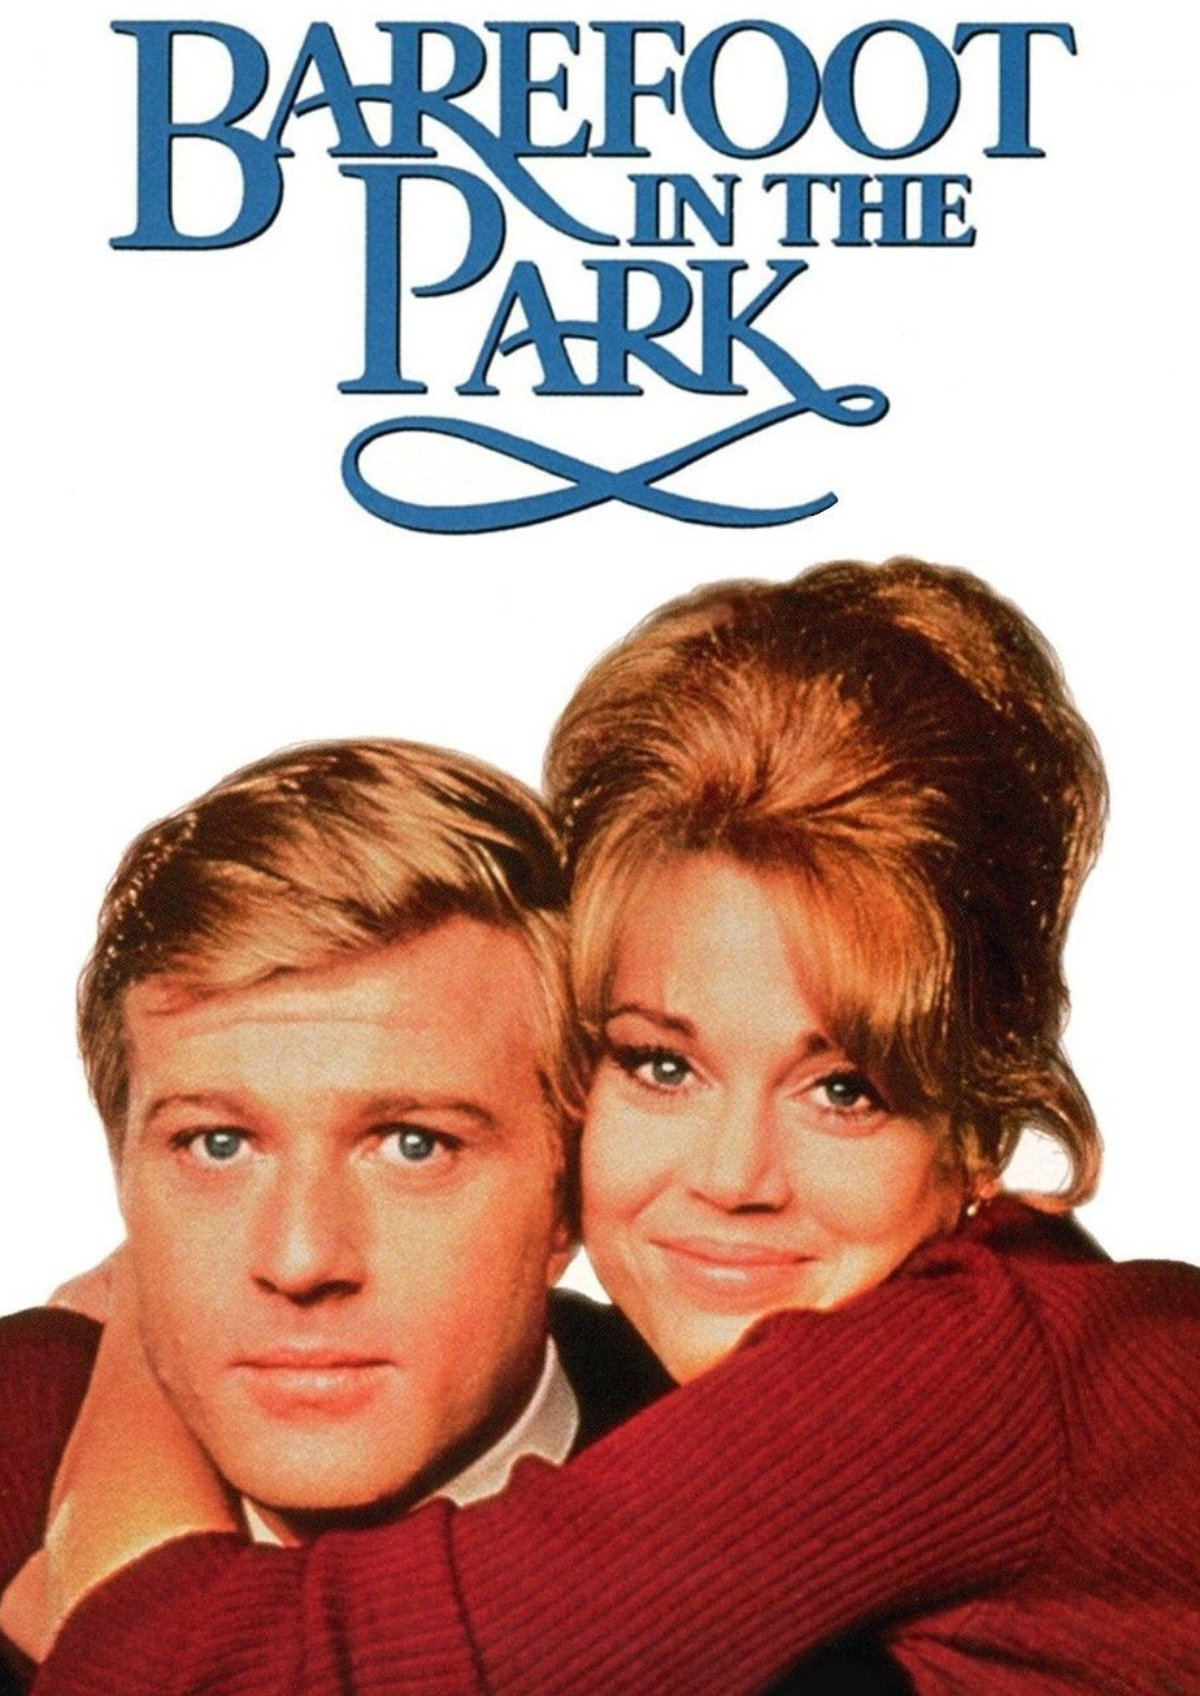 'Barefoot In The Park' movie poster